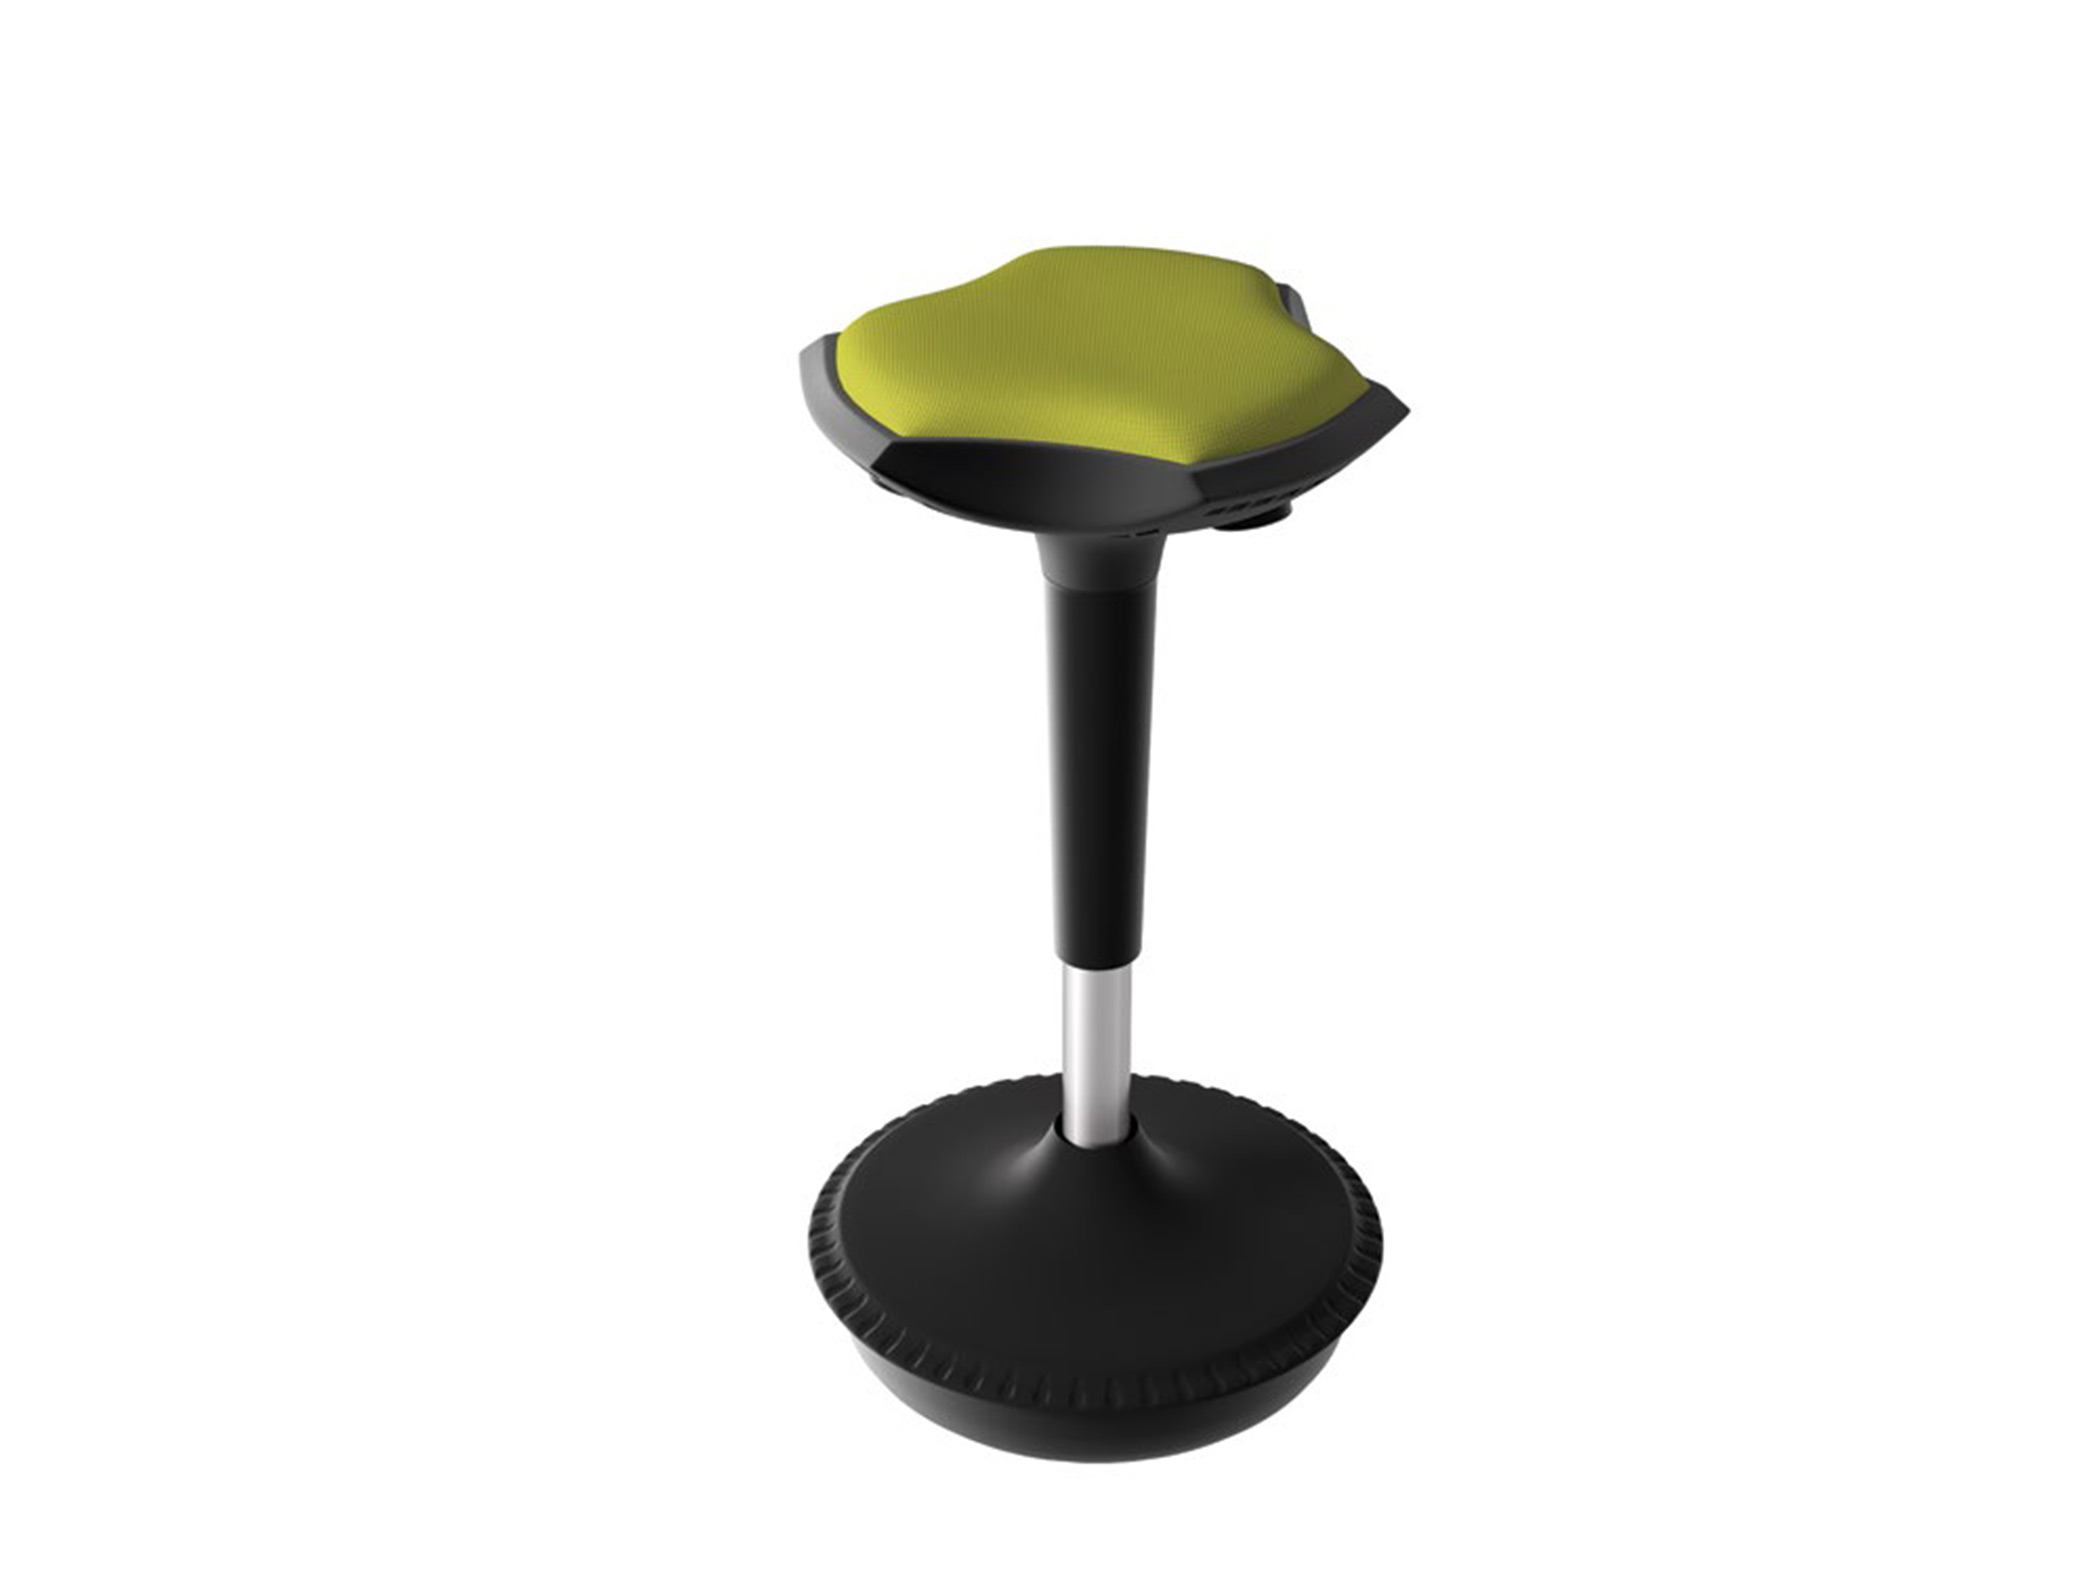 Cubicle Furniture from Compel - Pogo stool